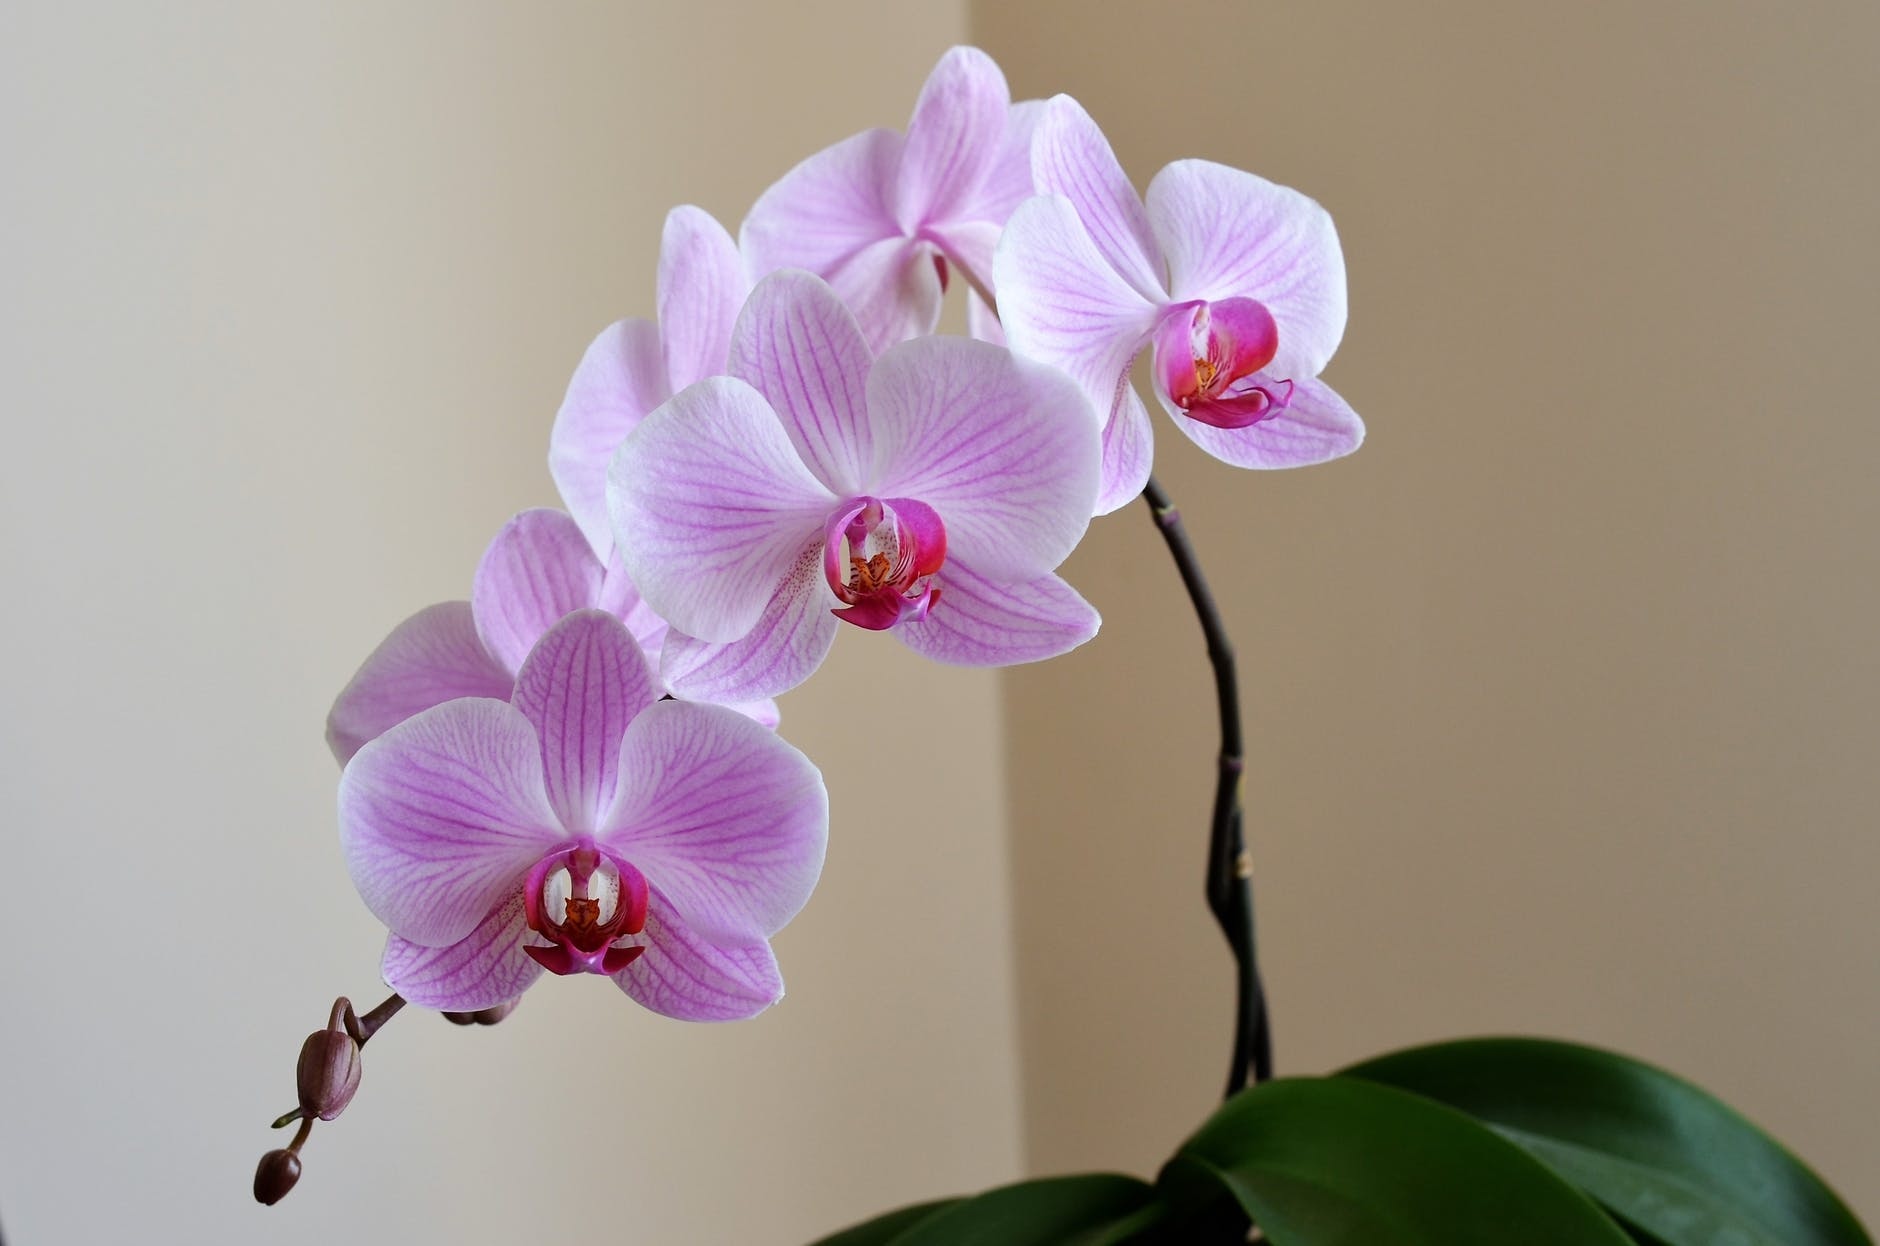 4 plants older adults can easily care for in a small space